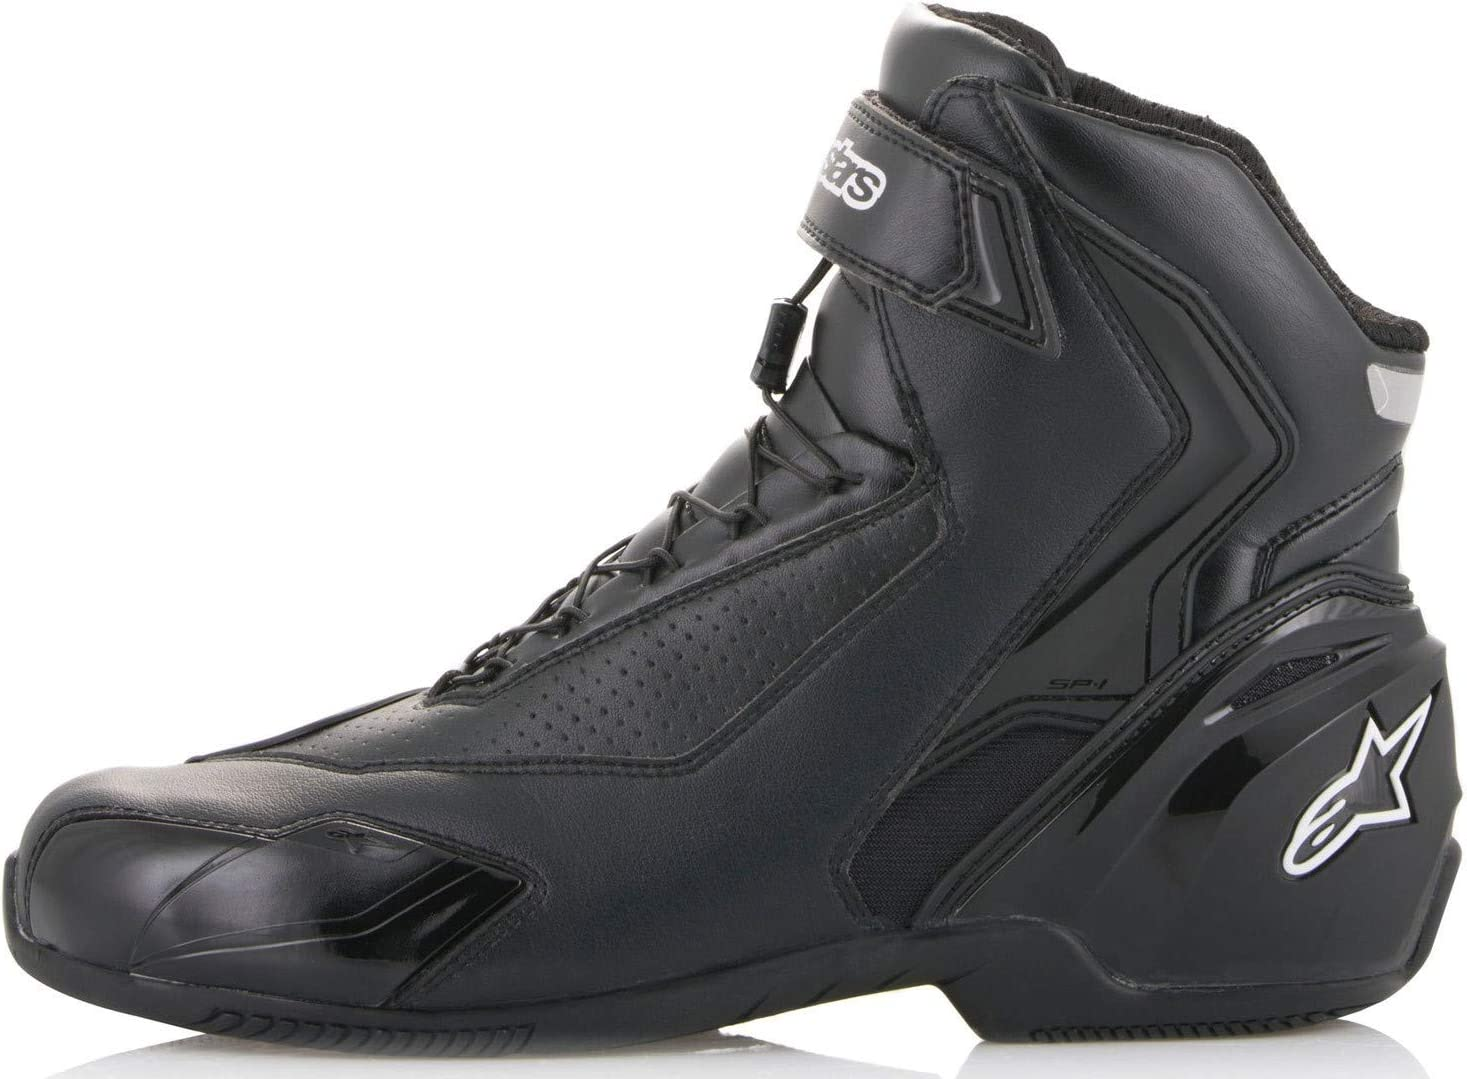 39 Black Alpinestars Motorcycle Boots Sektor Waterproof Shoe Black